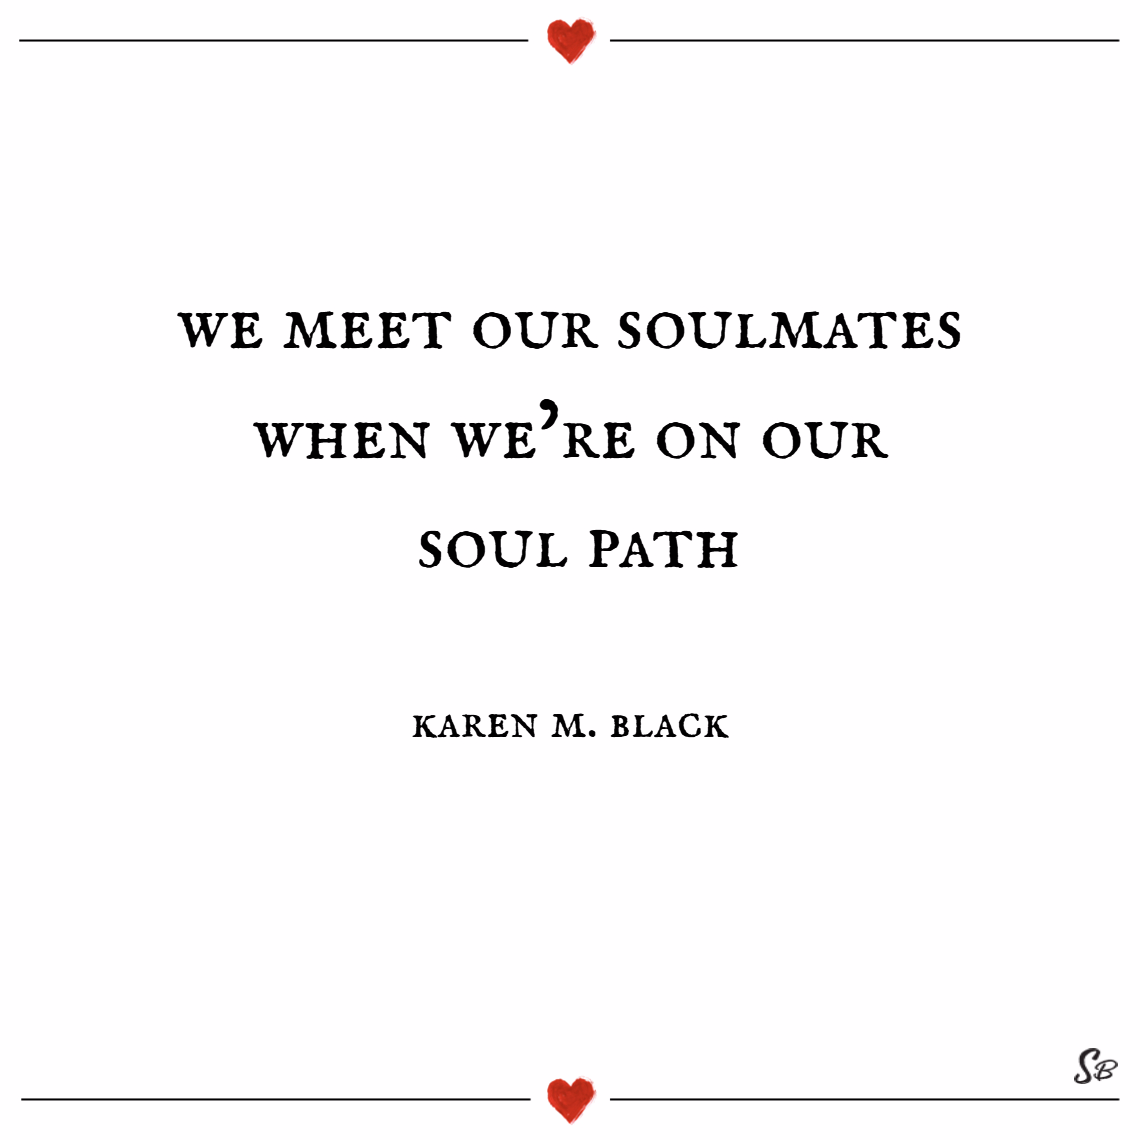 We meet our soulmates when we're on our soul path. – karen m. black